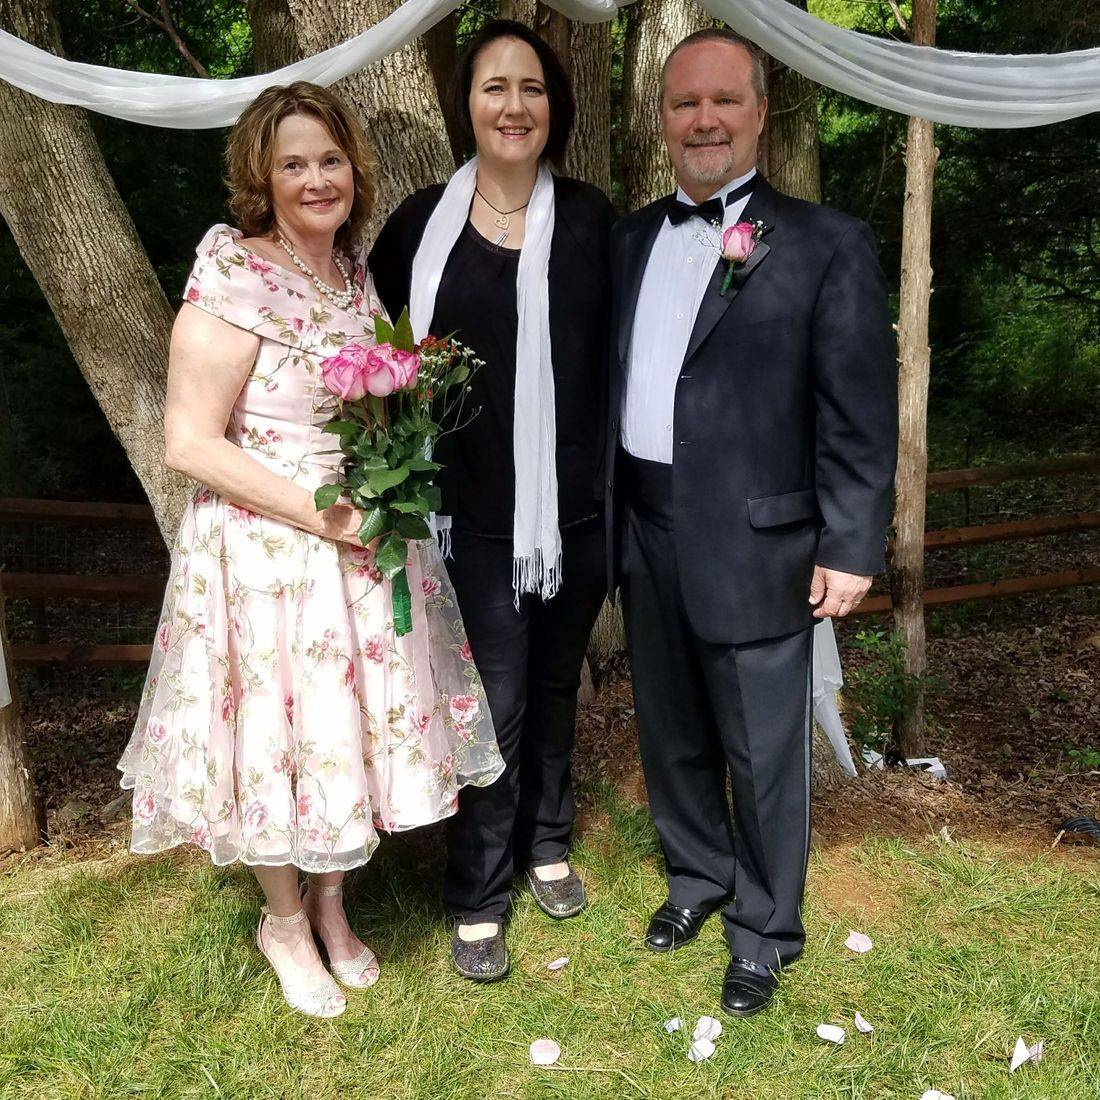 mature, wedding, officiant, marriage